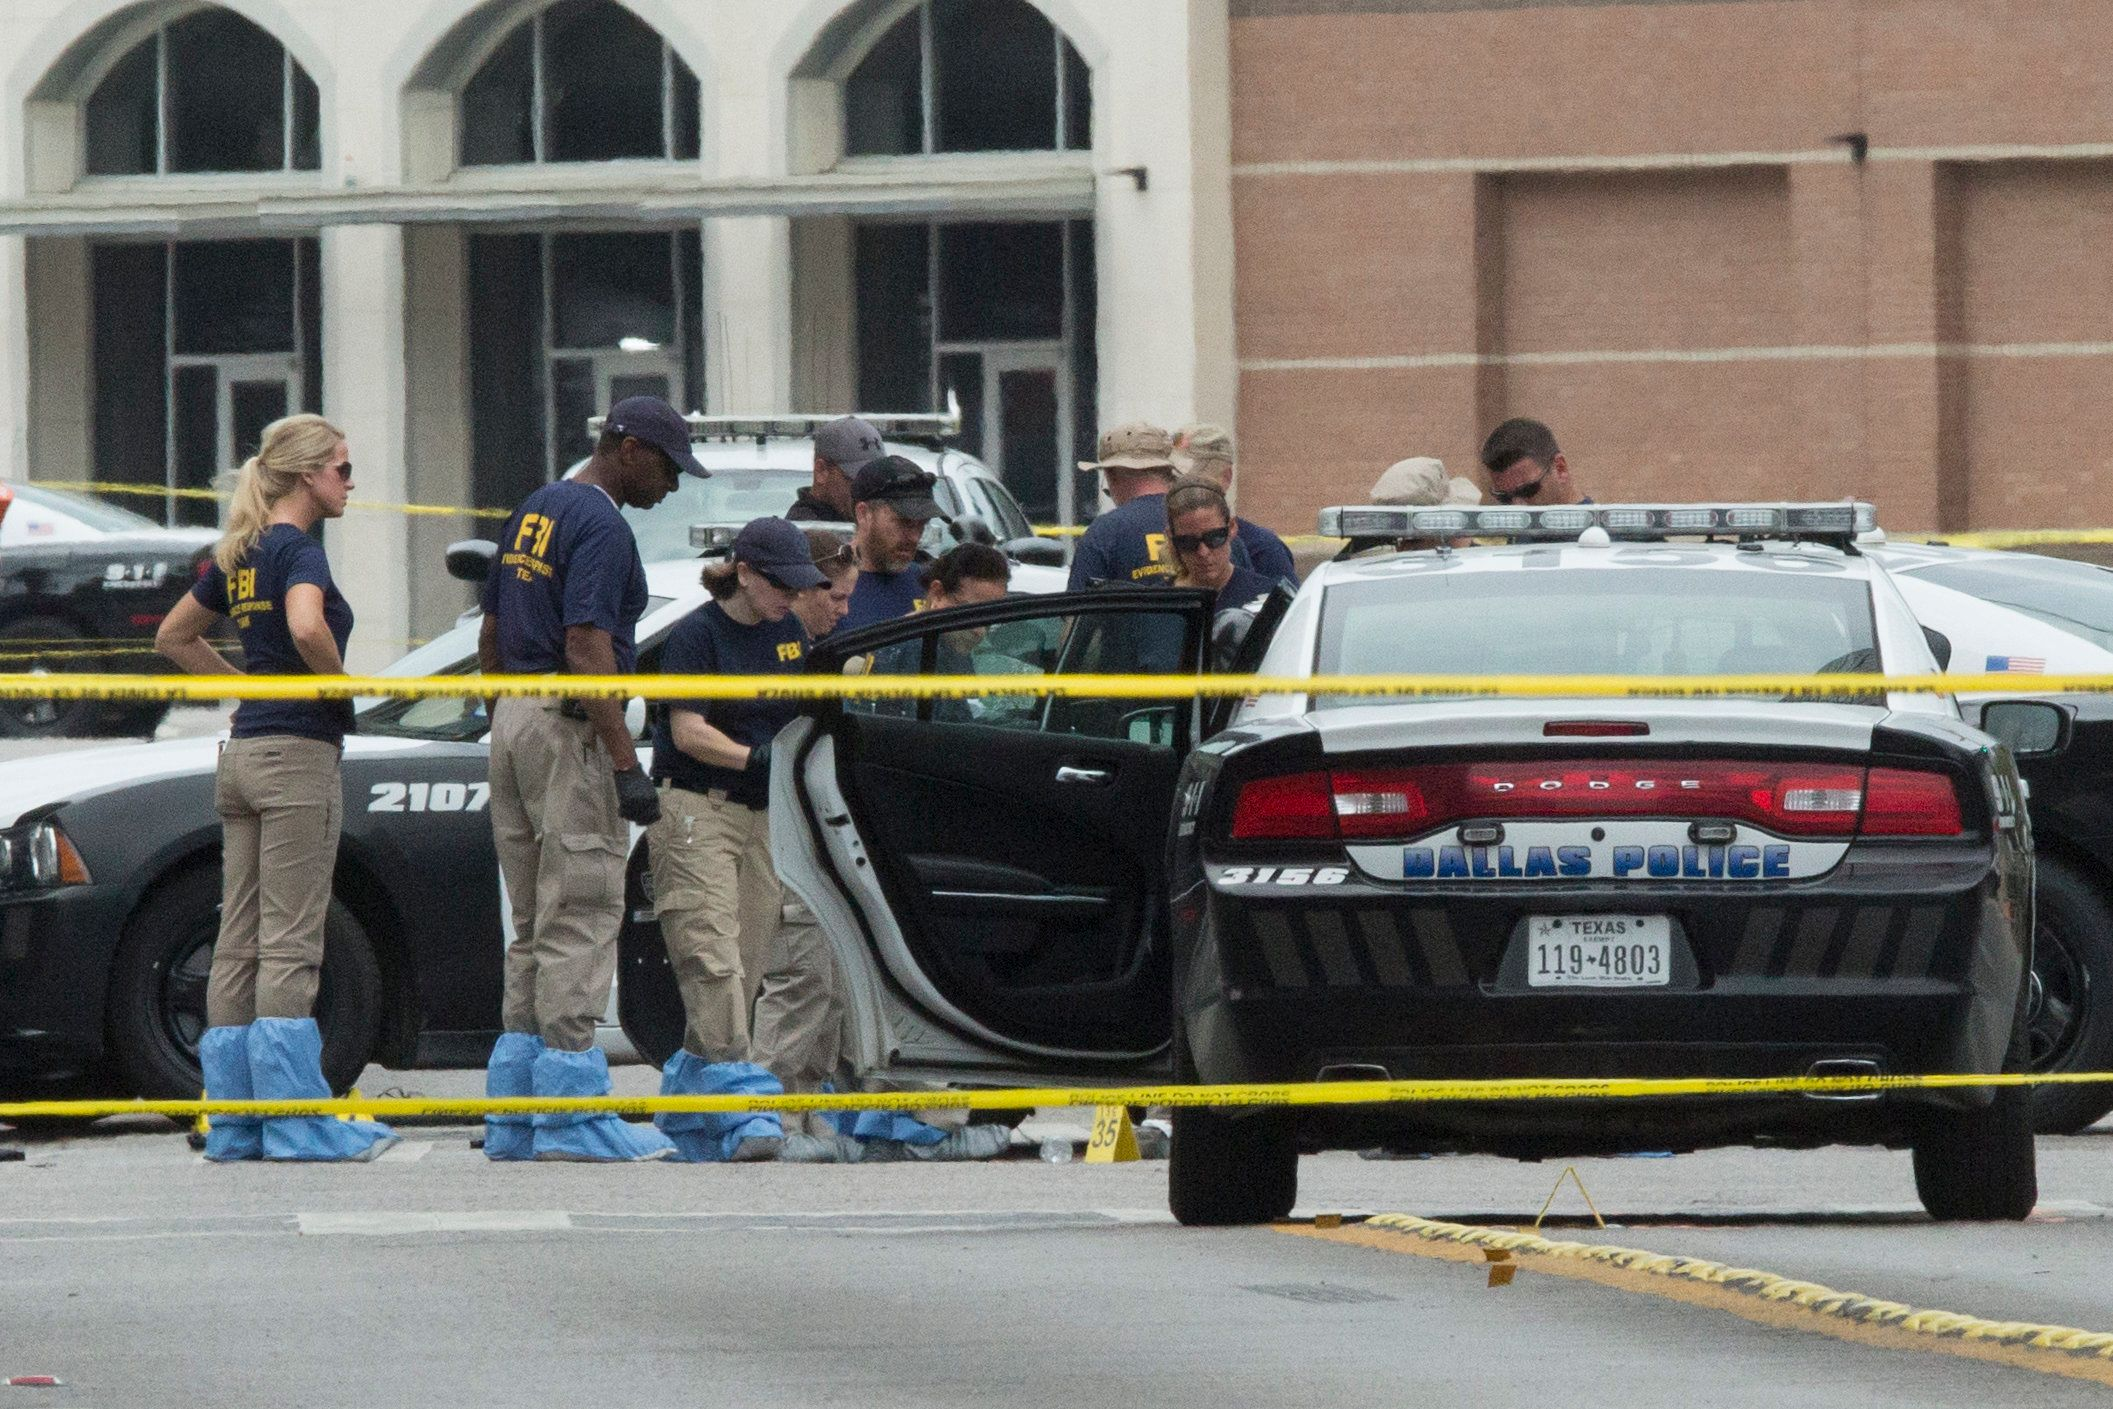 FBI agents examine the crime scene of the Dallas, Texas, sniper shooting on July 9, 2016. The e gunman behind a sniper-style attack in Dallas was an Army veteran and loner driven to exact revenge on white officers after the recent deaths of two black men at the hands of police, authorities have said. Micah Johnson, 25, had no criminal history, Dallas police said in a statement.  / AFP / Laura Buckman        (Photo credit should read LAURA BUCKMAN/AFP/Getty Images)